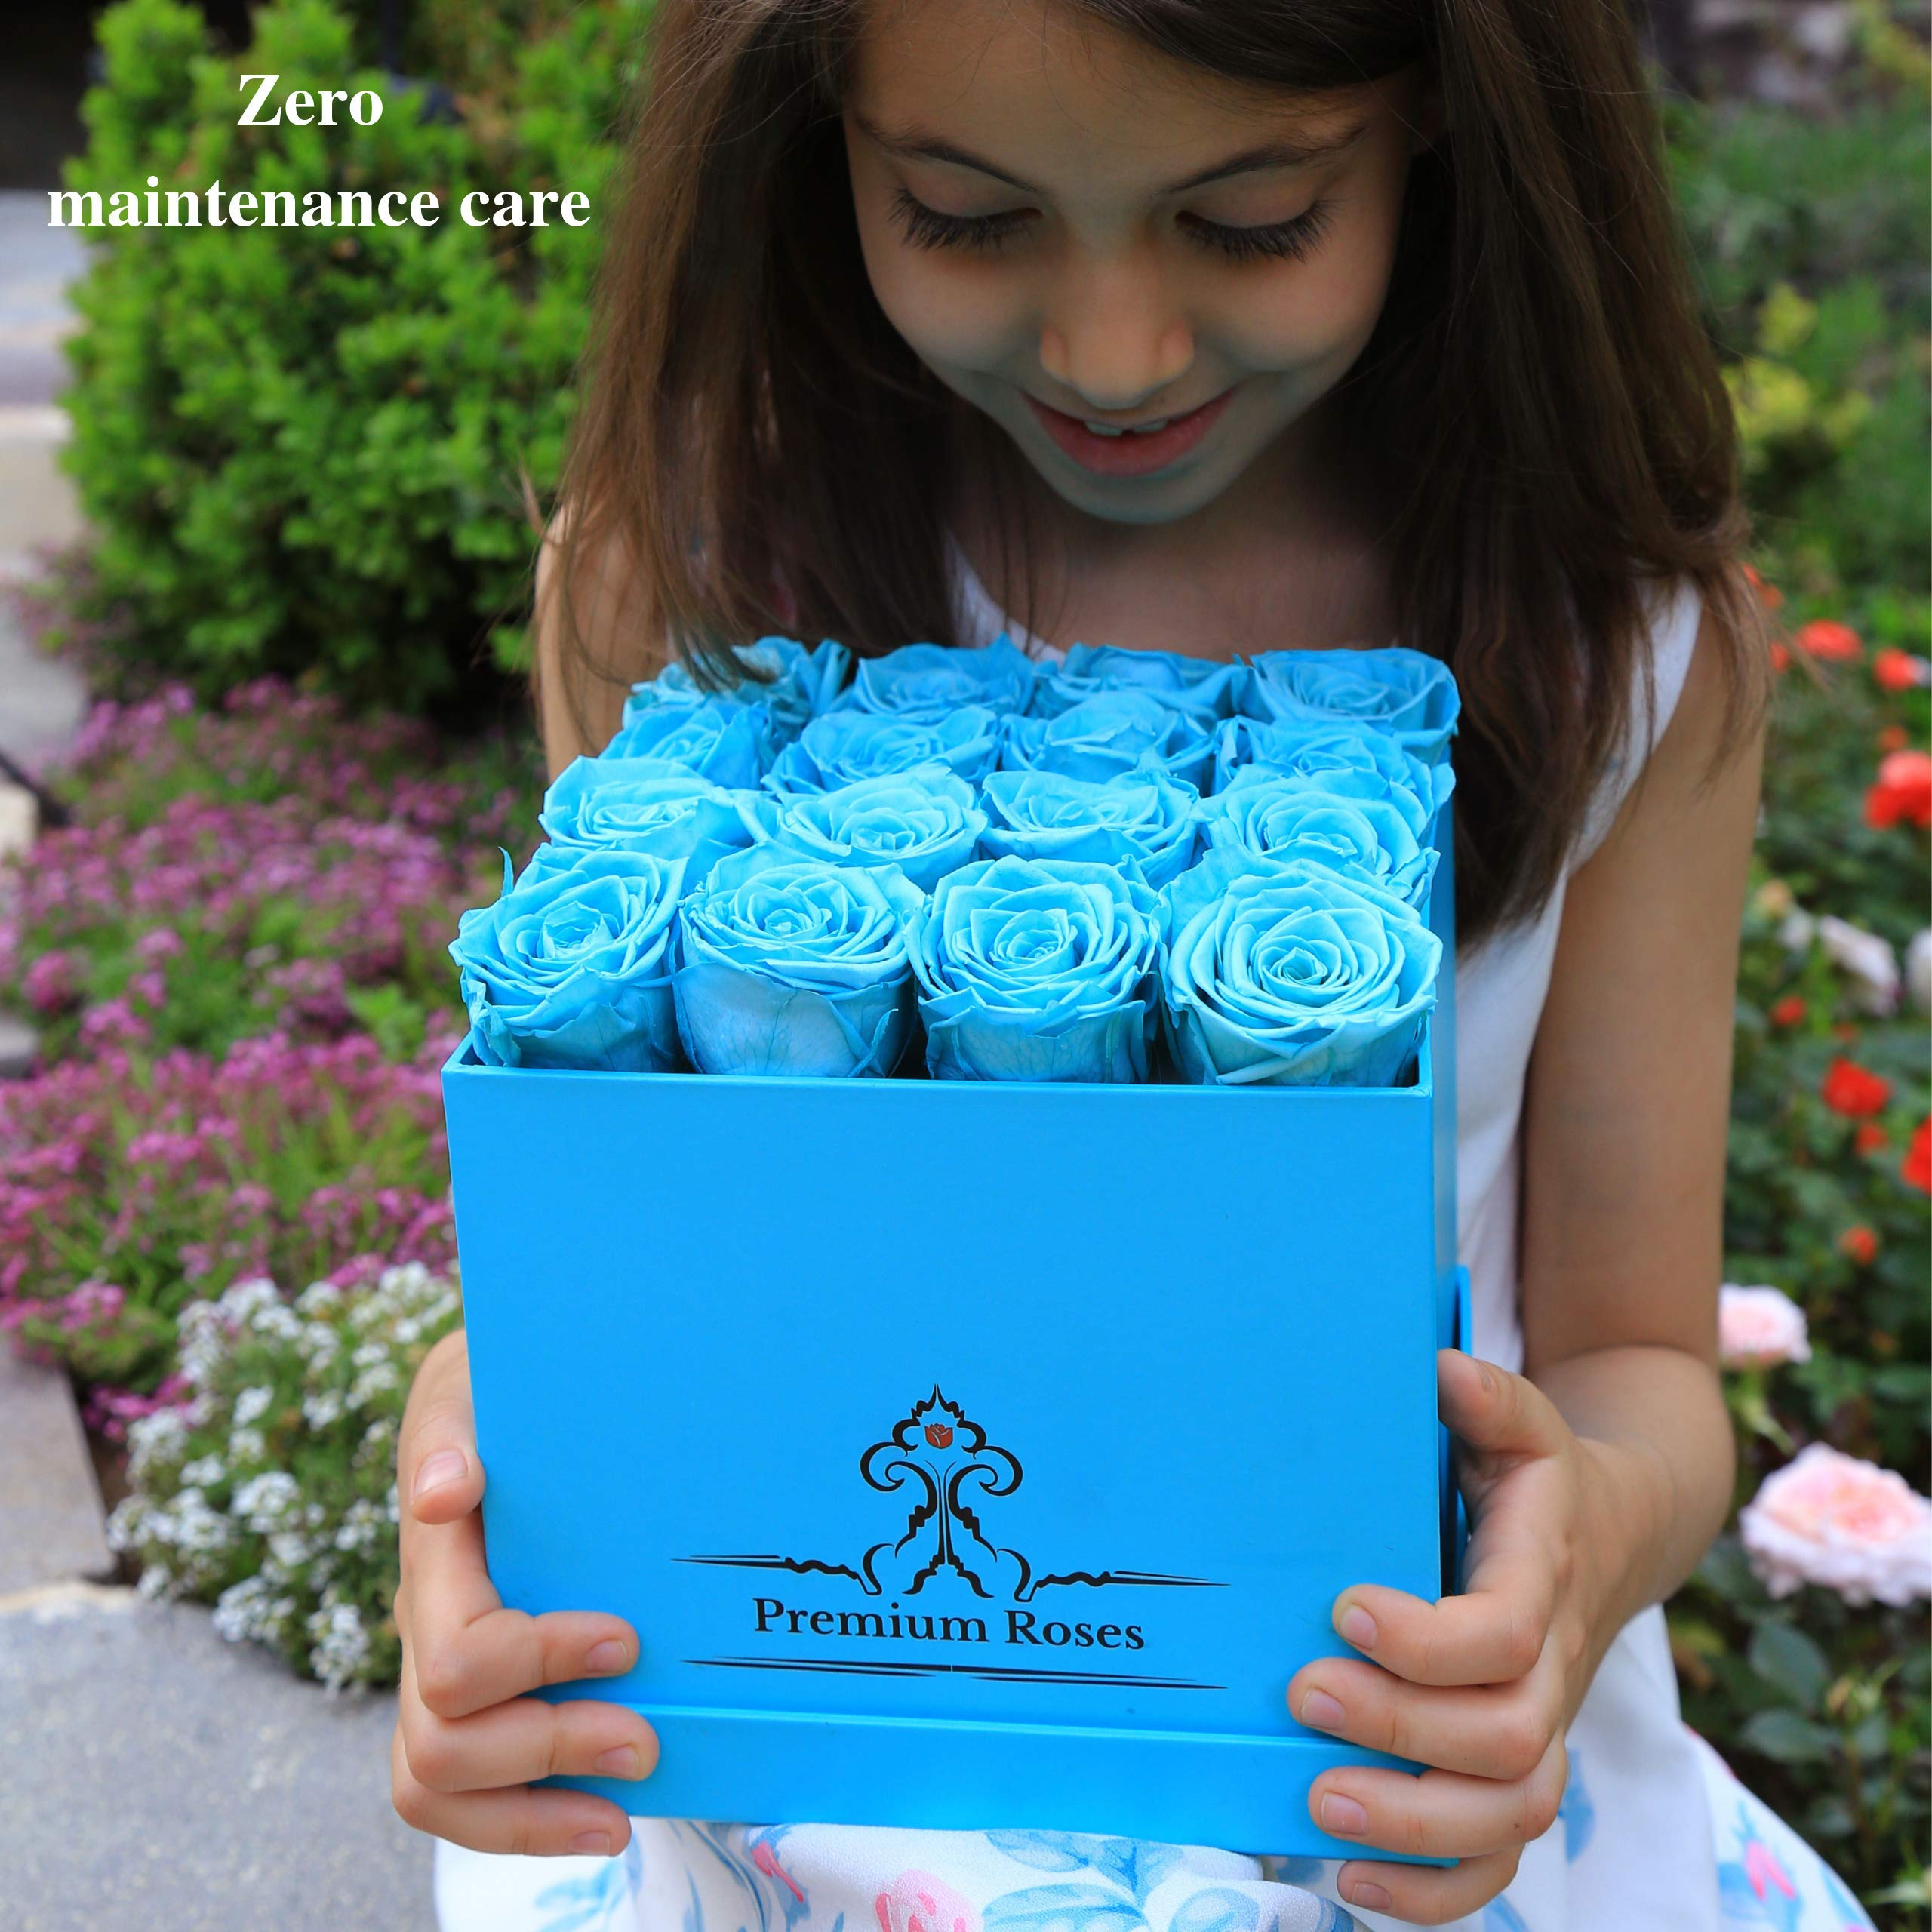 Premium Roses | Model Turquoise| Real Roses That Last 365 Days | Roses in a Box| Fresh Flowers (Blue Box, Medium) by Premium Roses (Image #4)